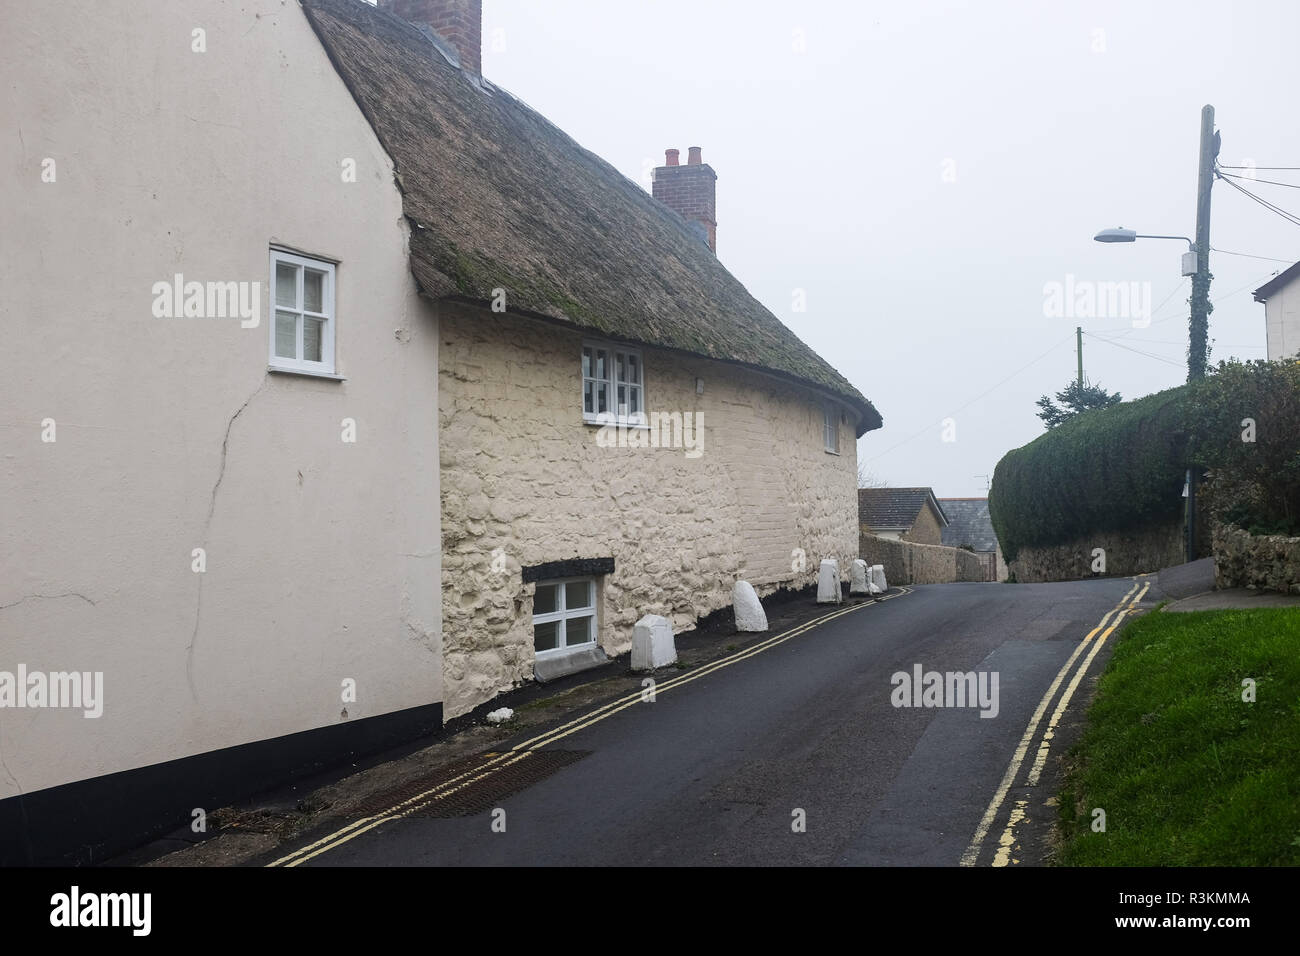 Old quaint thatched cottages in Charmouth in West Dorset UK Stock Photo